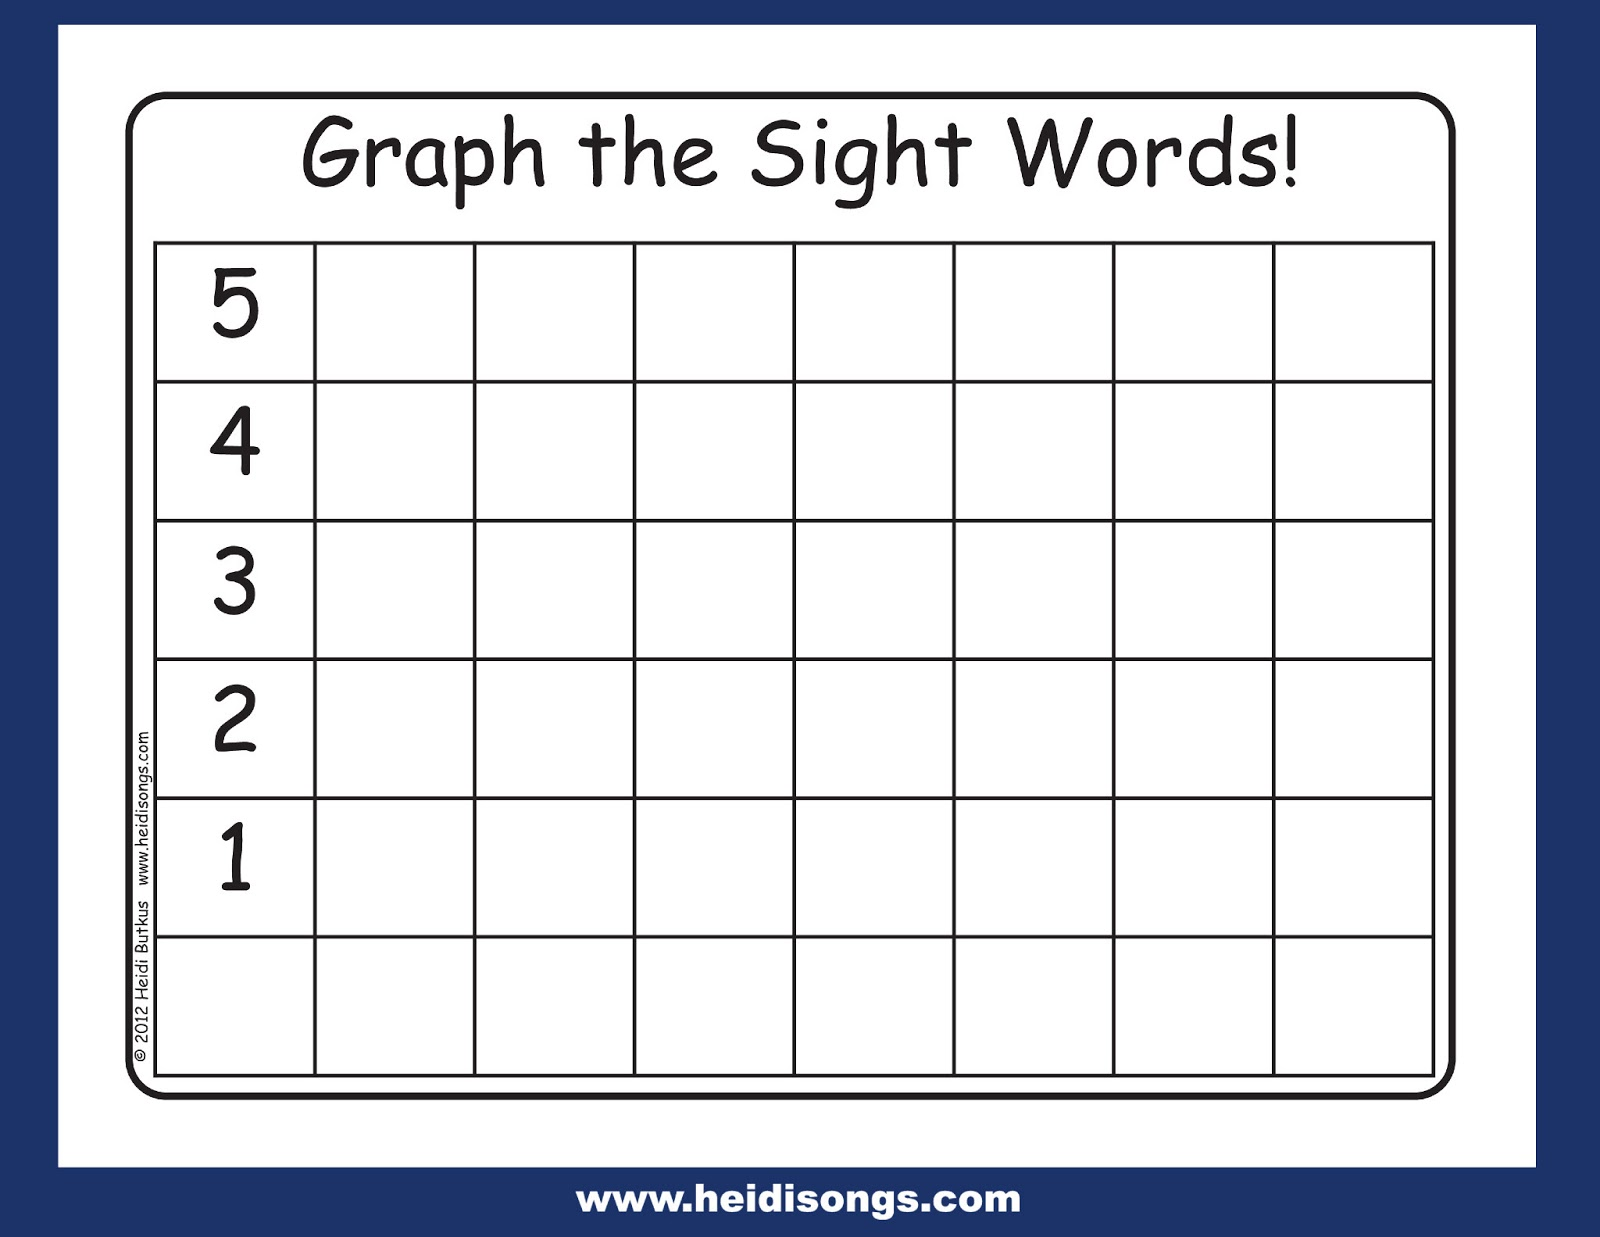 Sight Word Worksheet New 207 Sight Word Graphing